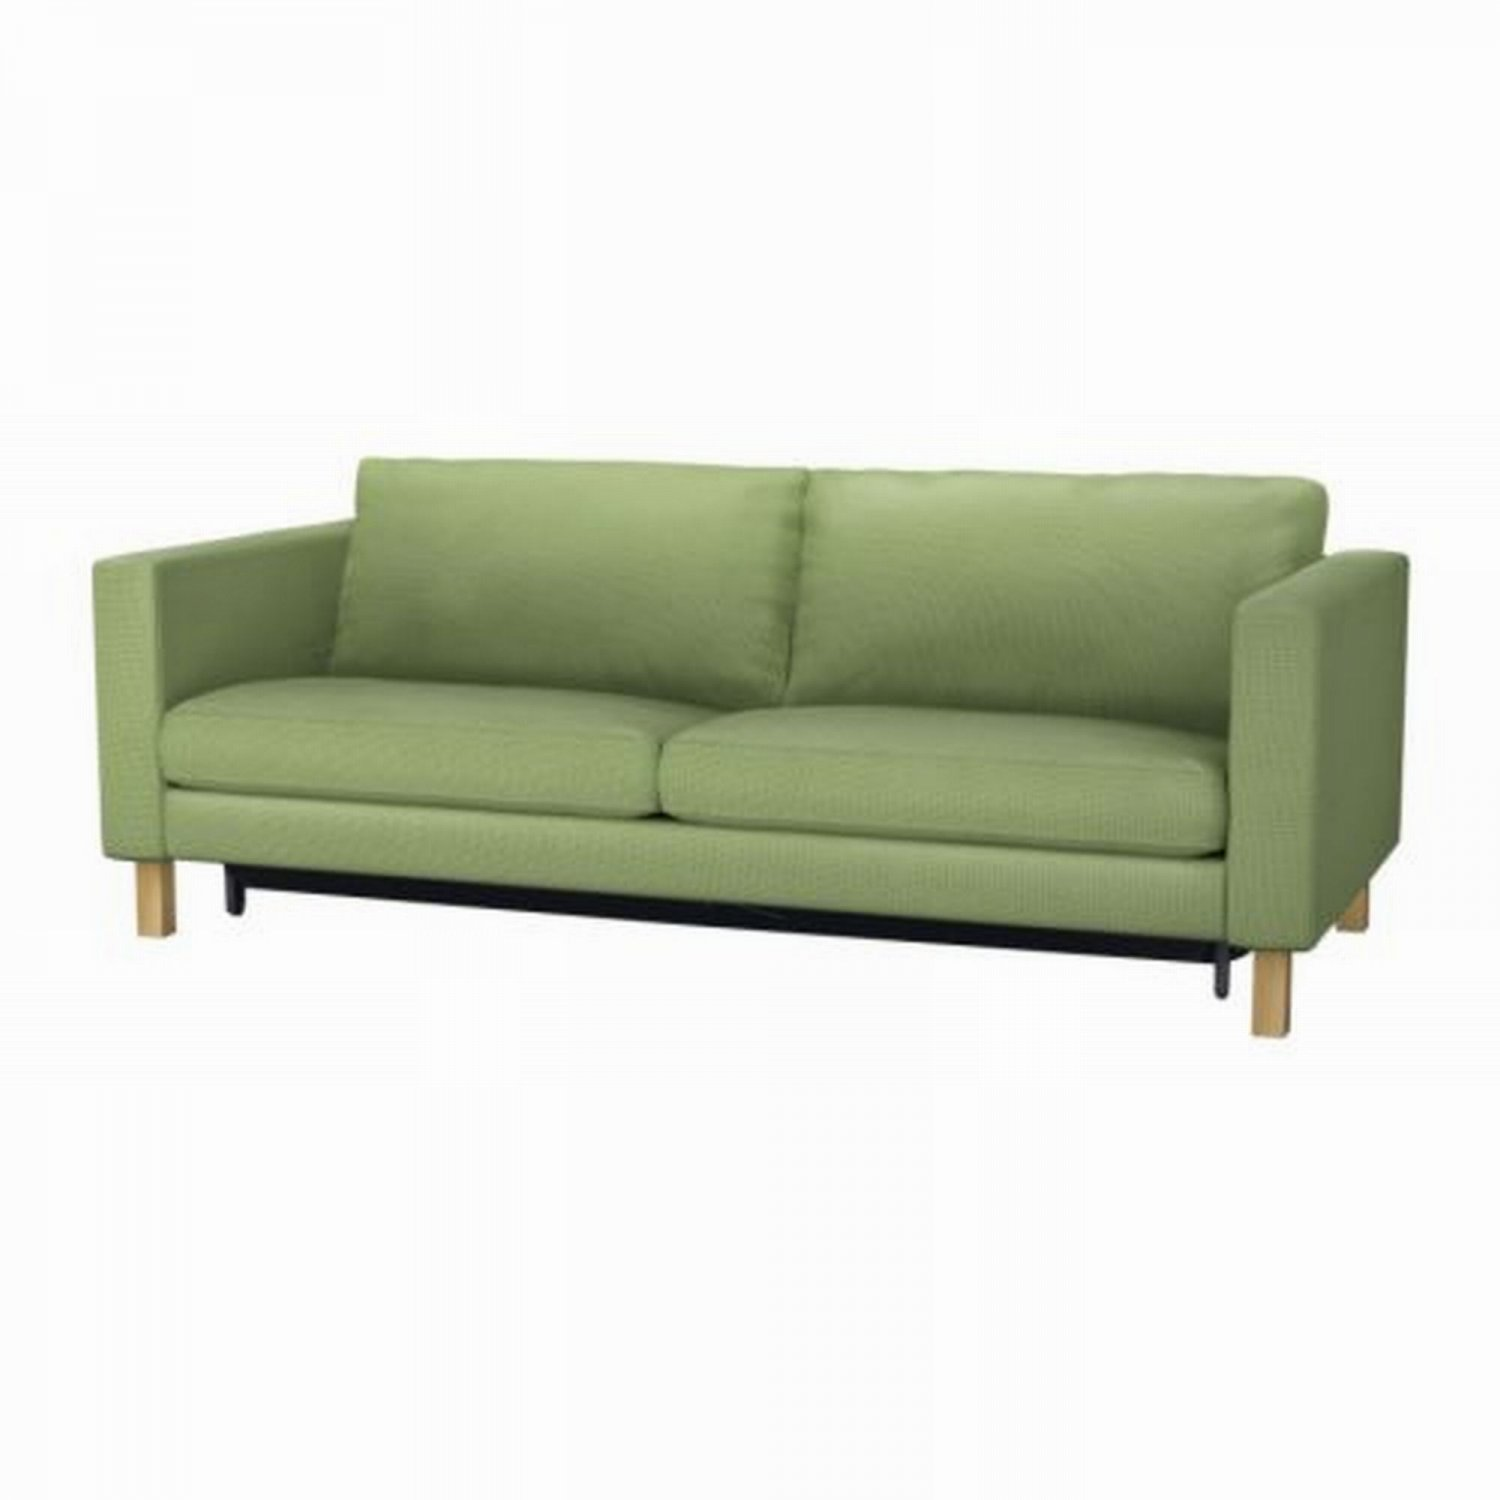 Cover For Karlstad Sofa: Ikea KARLSTAD Sofa Bed Sofabed SLIPCOVER Cover KORNDAL GREEN